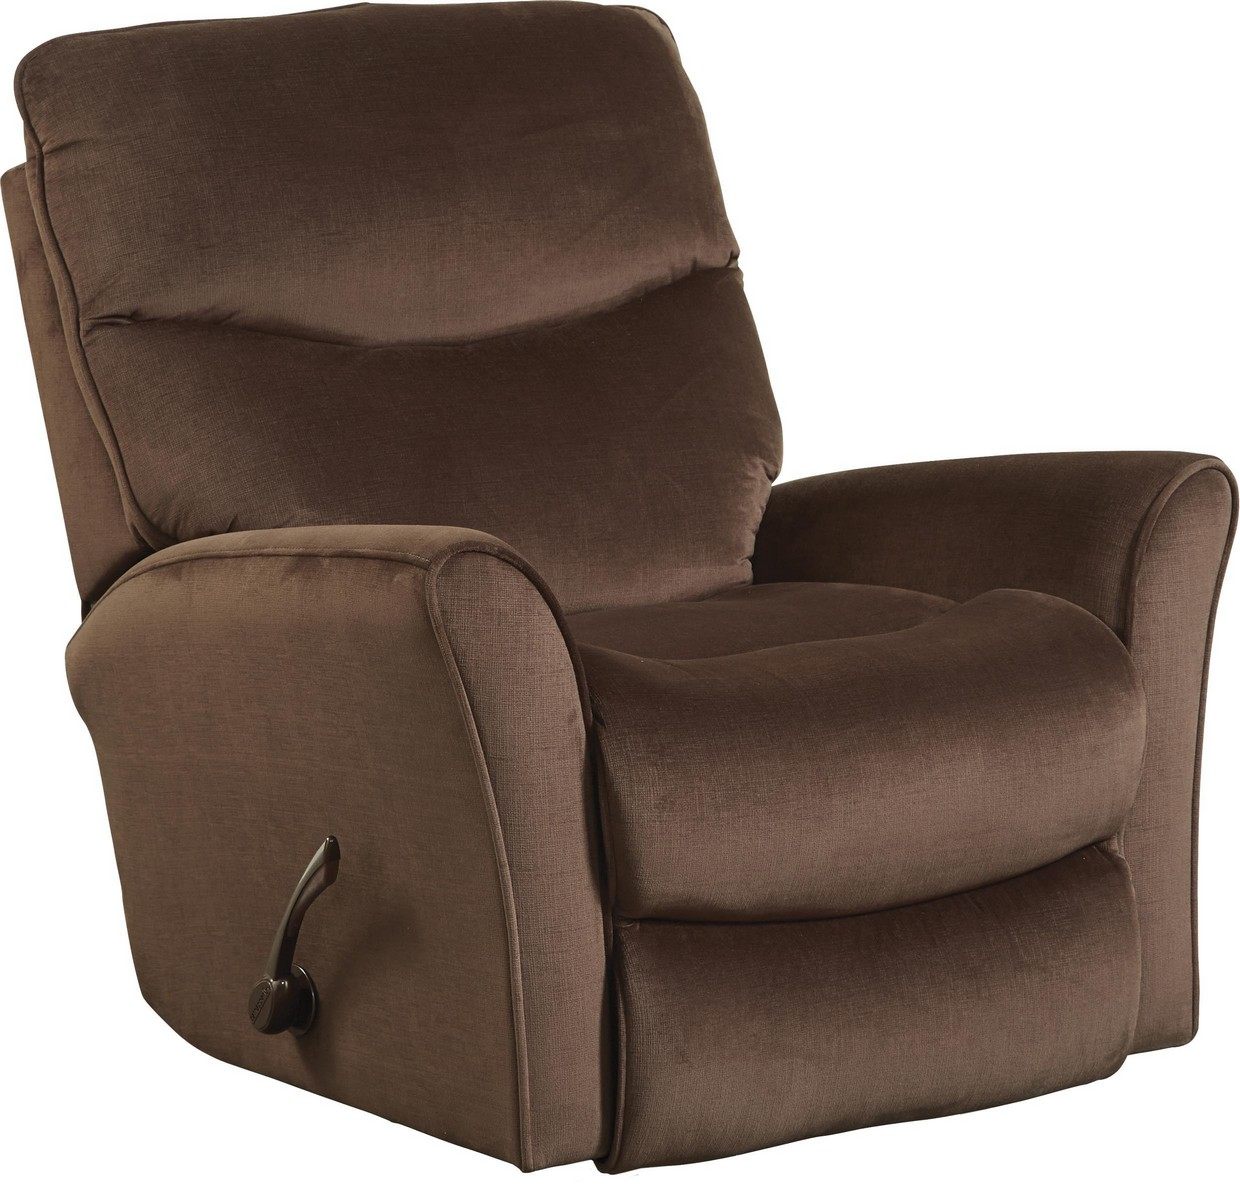 CatNapper Evan Power Wall Hugger Recliner - Chocolate